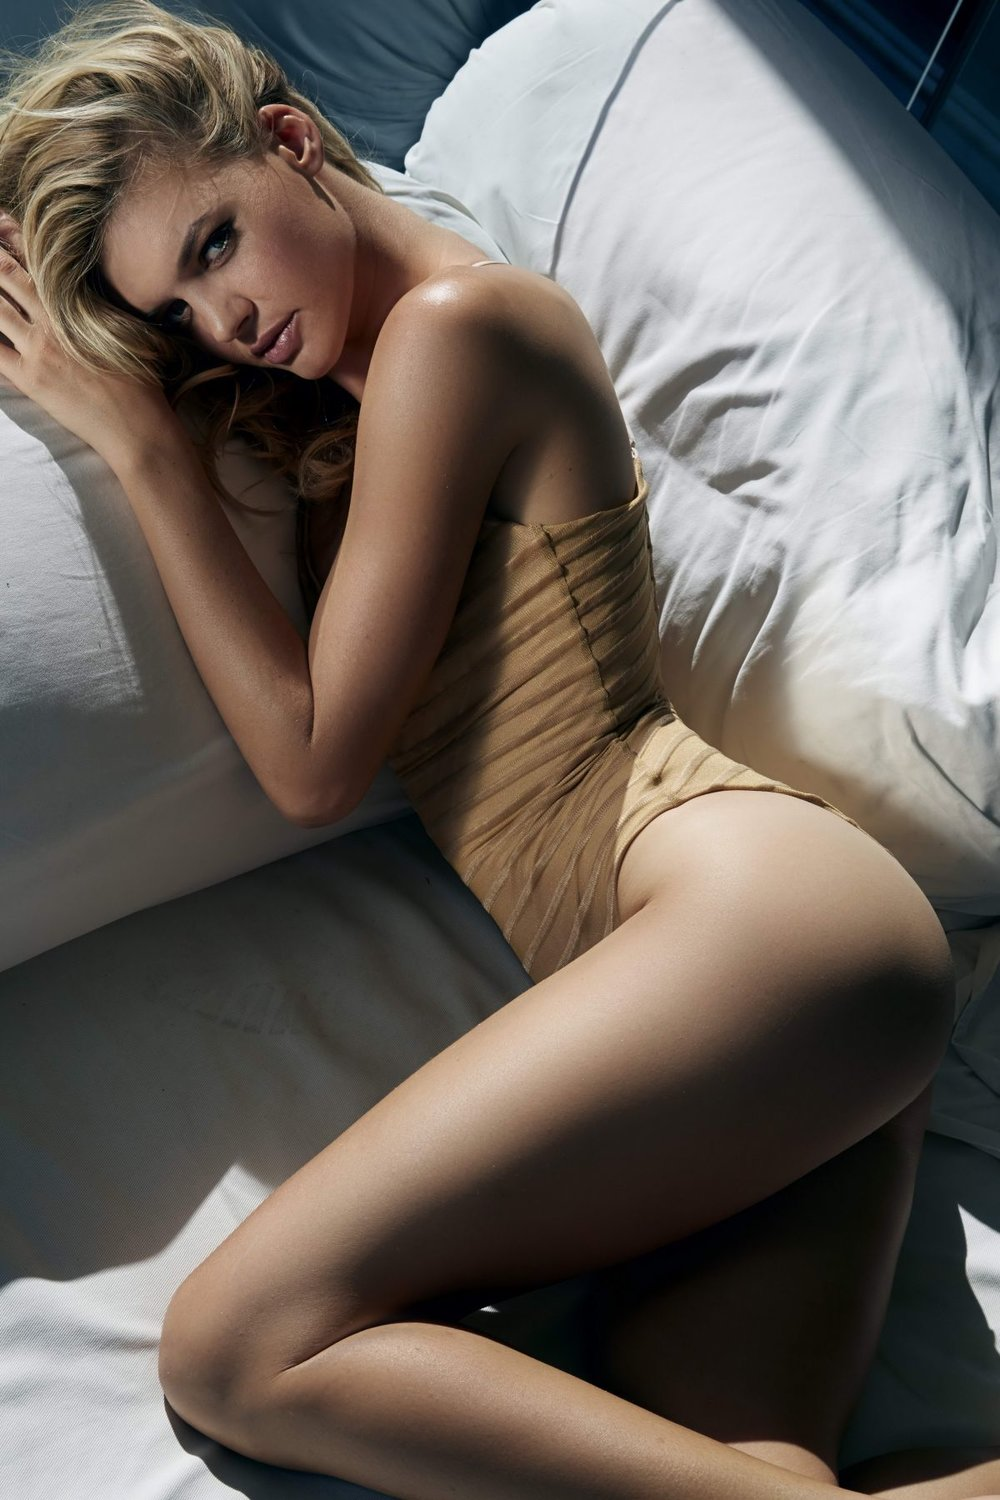 kelly-rohrbach-by-randall-slavin-photoshoot-2015_1 2.jpg